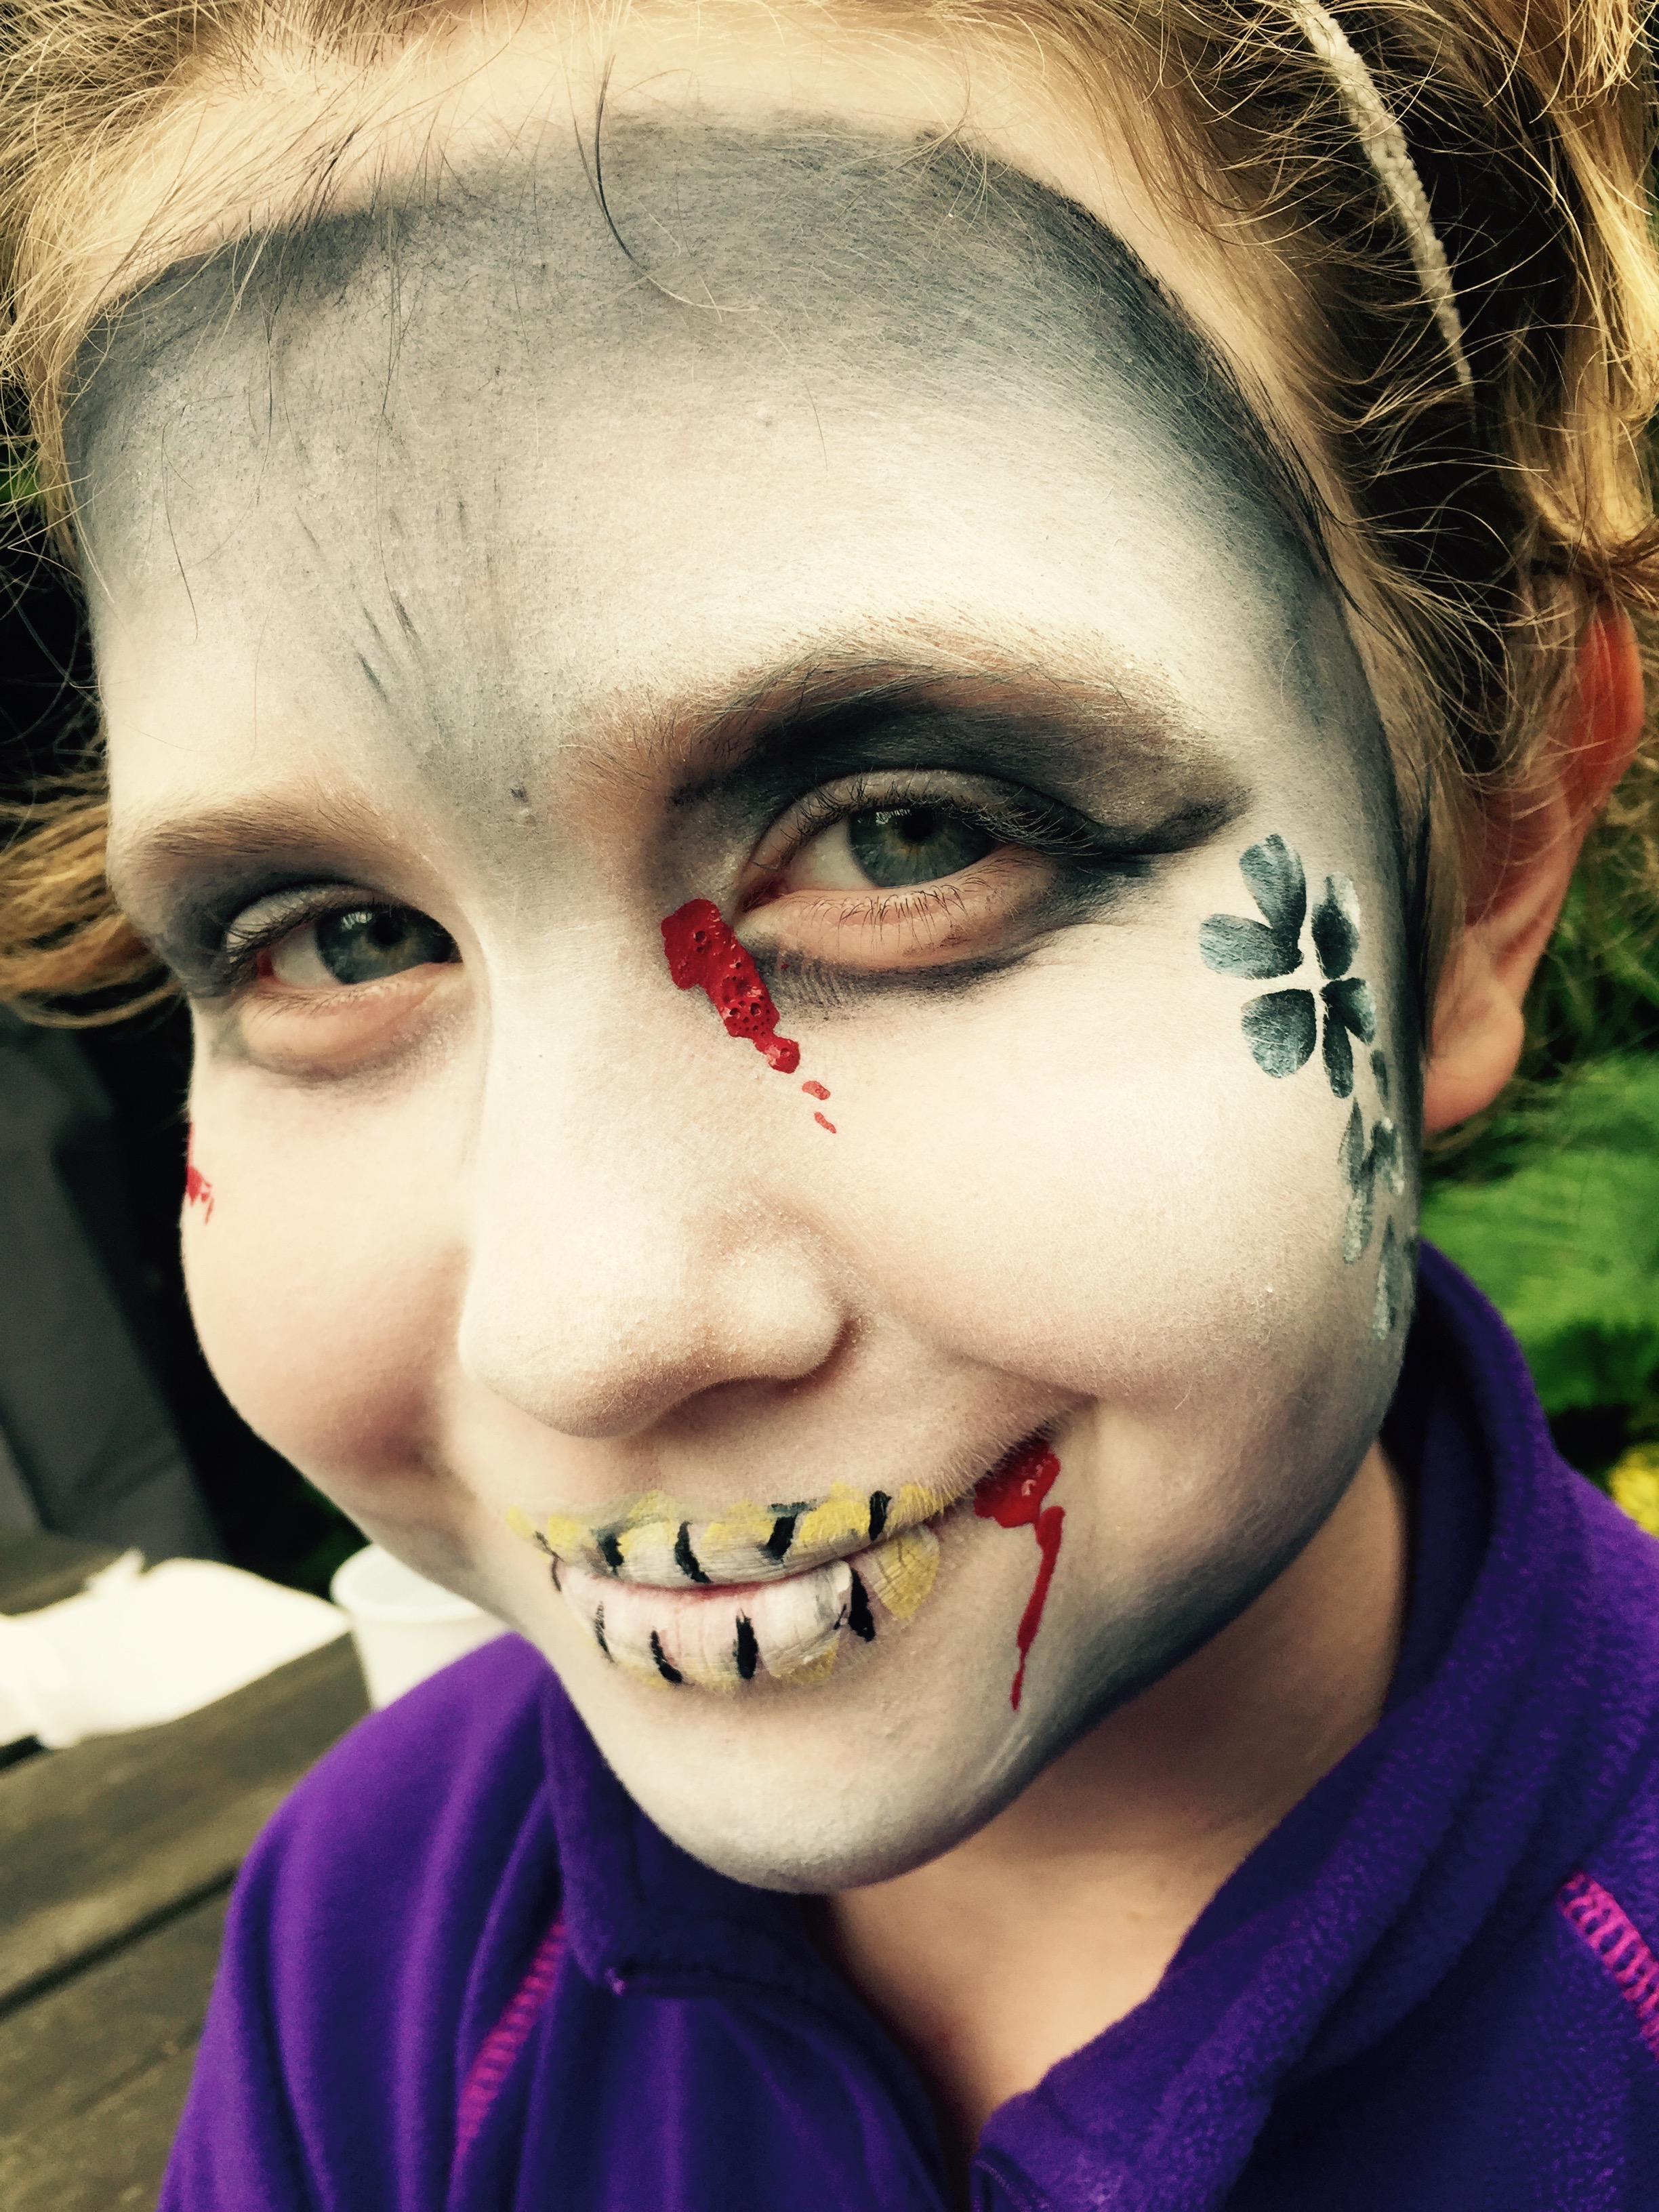 Beanys-facepainting-zombie